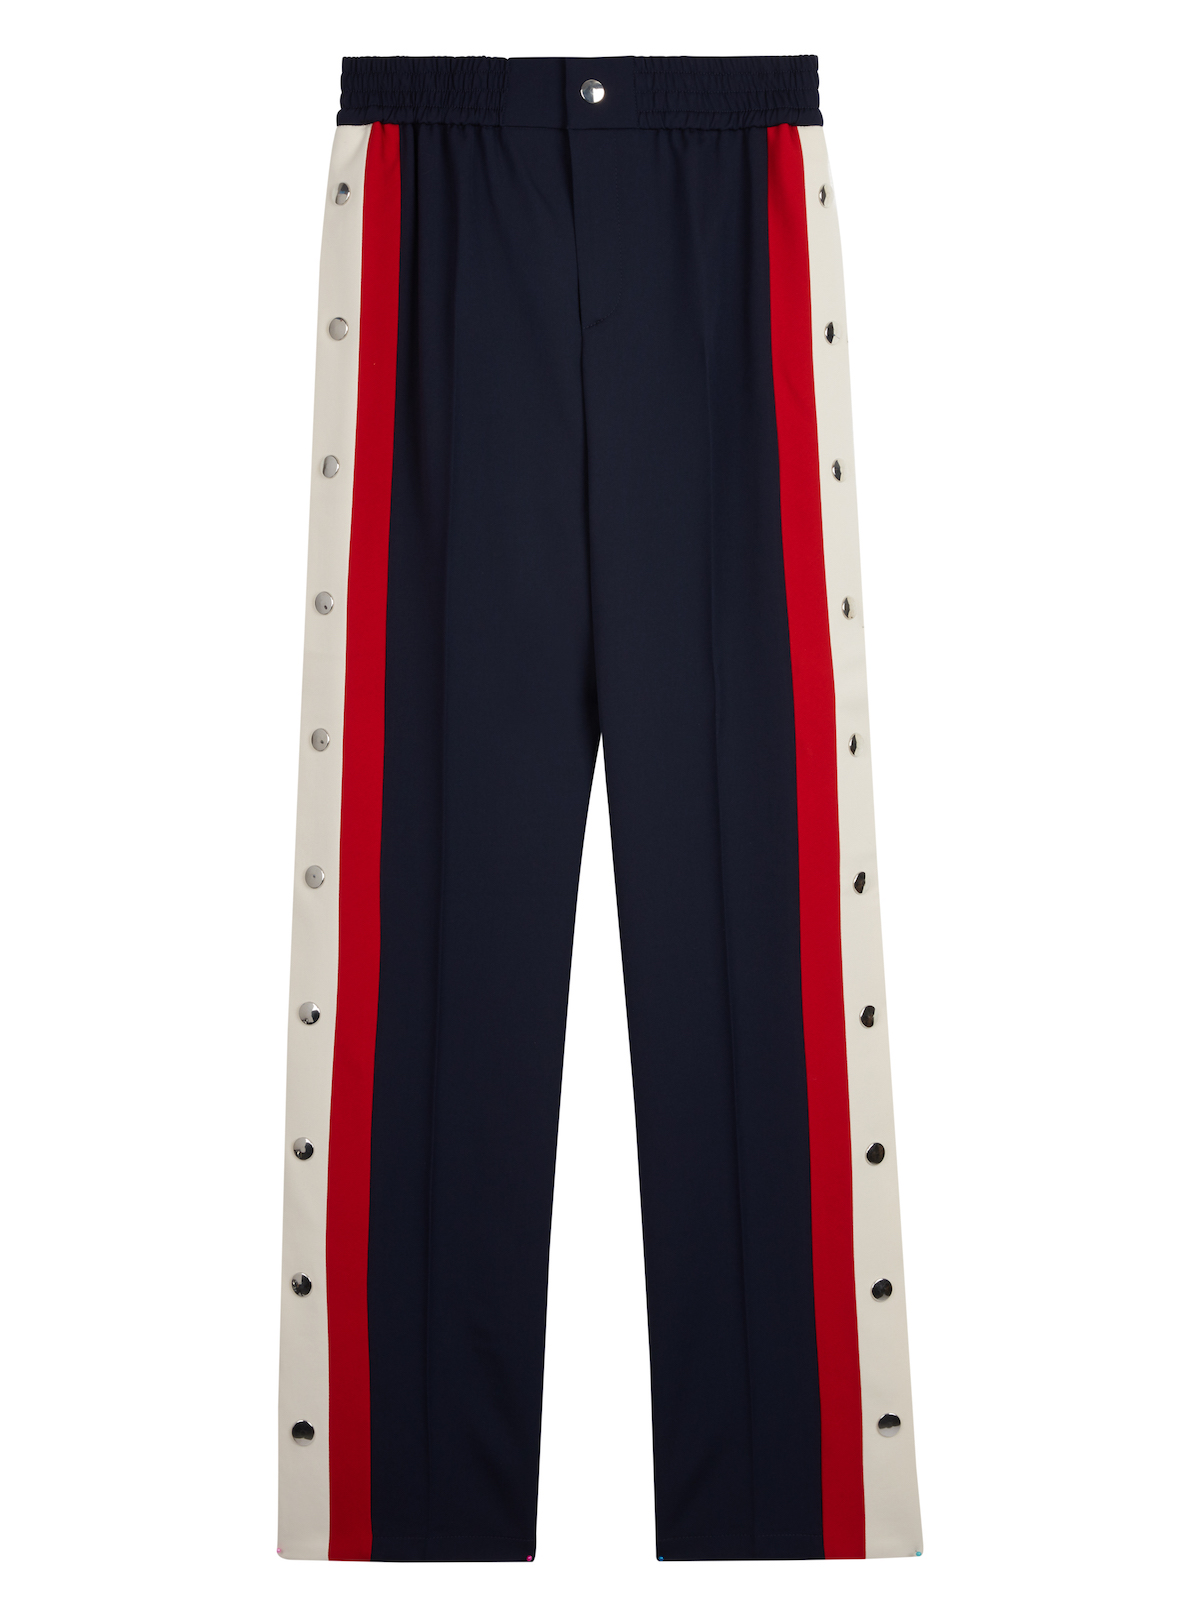 Gucci Striped Wool Sweatpants